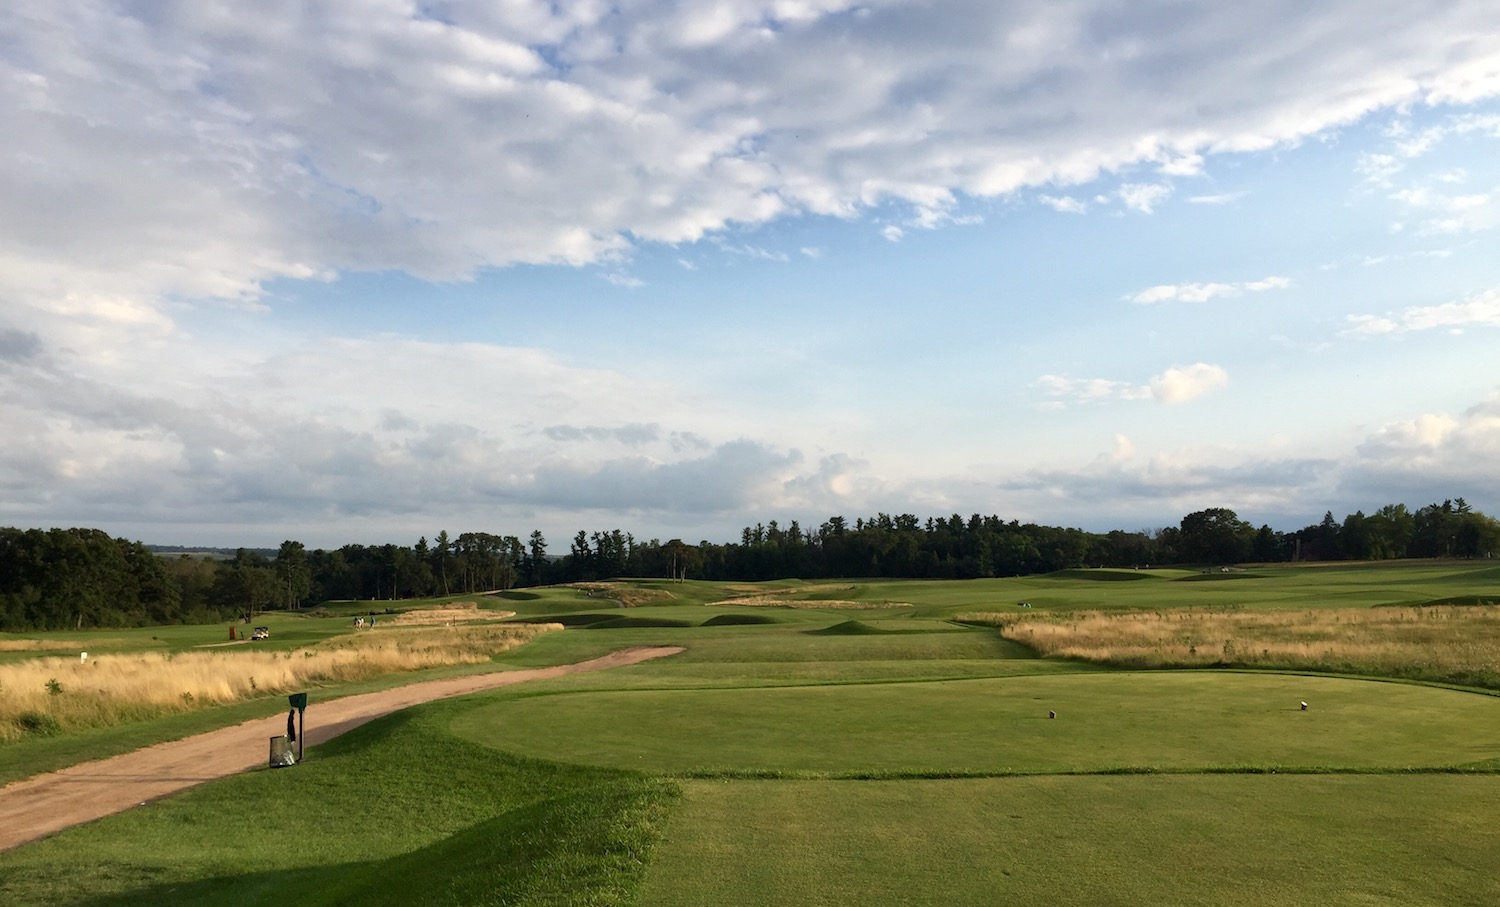 Lawsonia Links is a Langford & Moreau masterpiece in central Wisconsin...but it's not quite a links, because it's far from the sea.